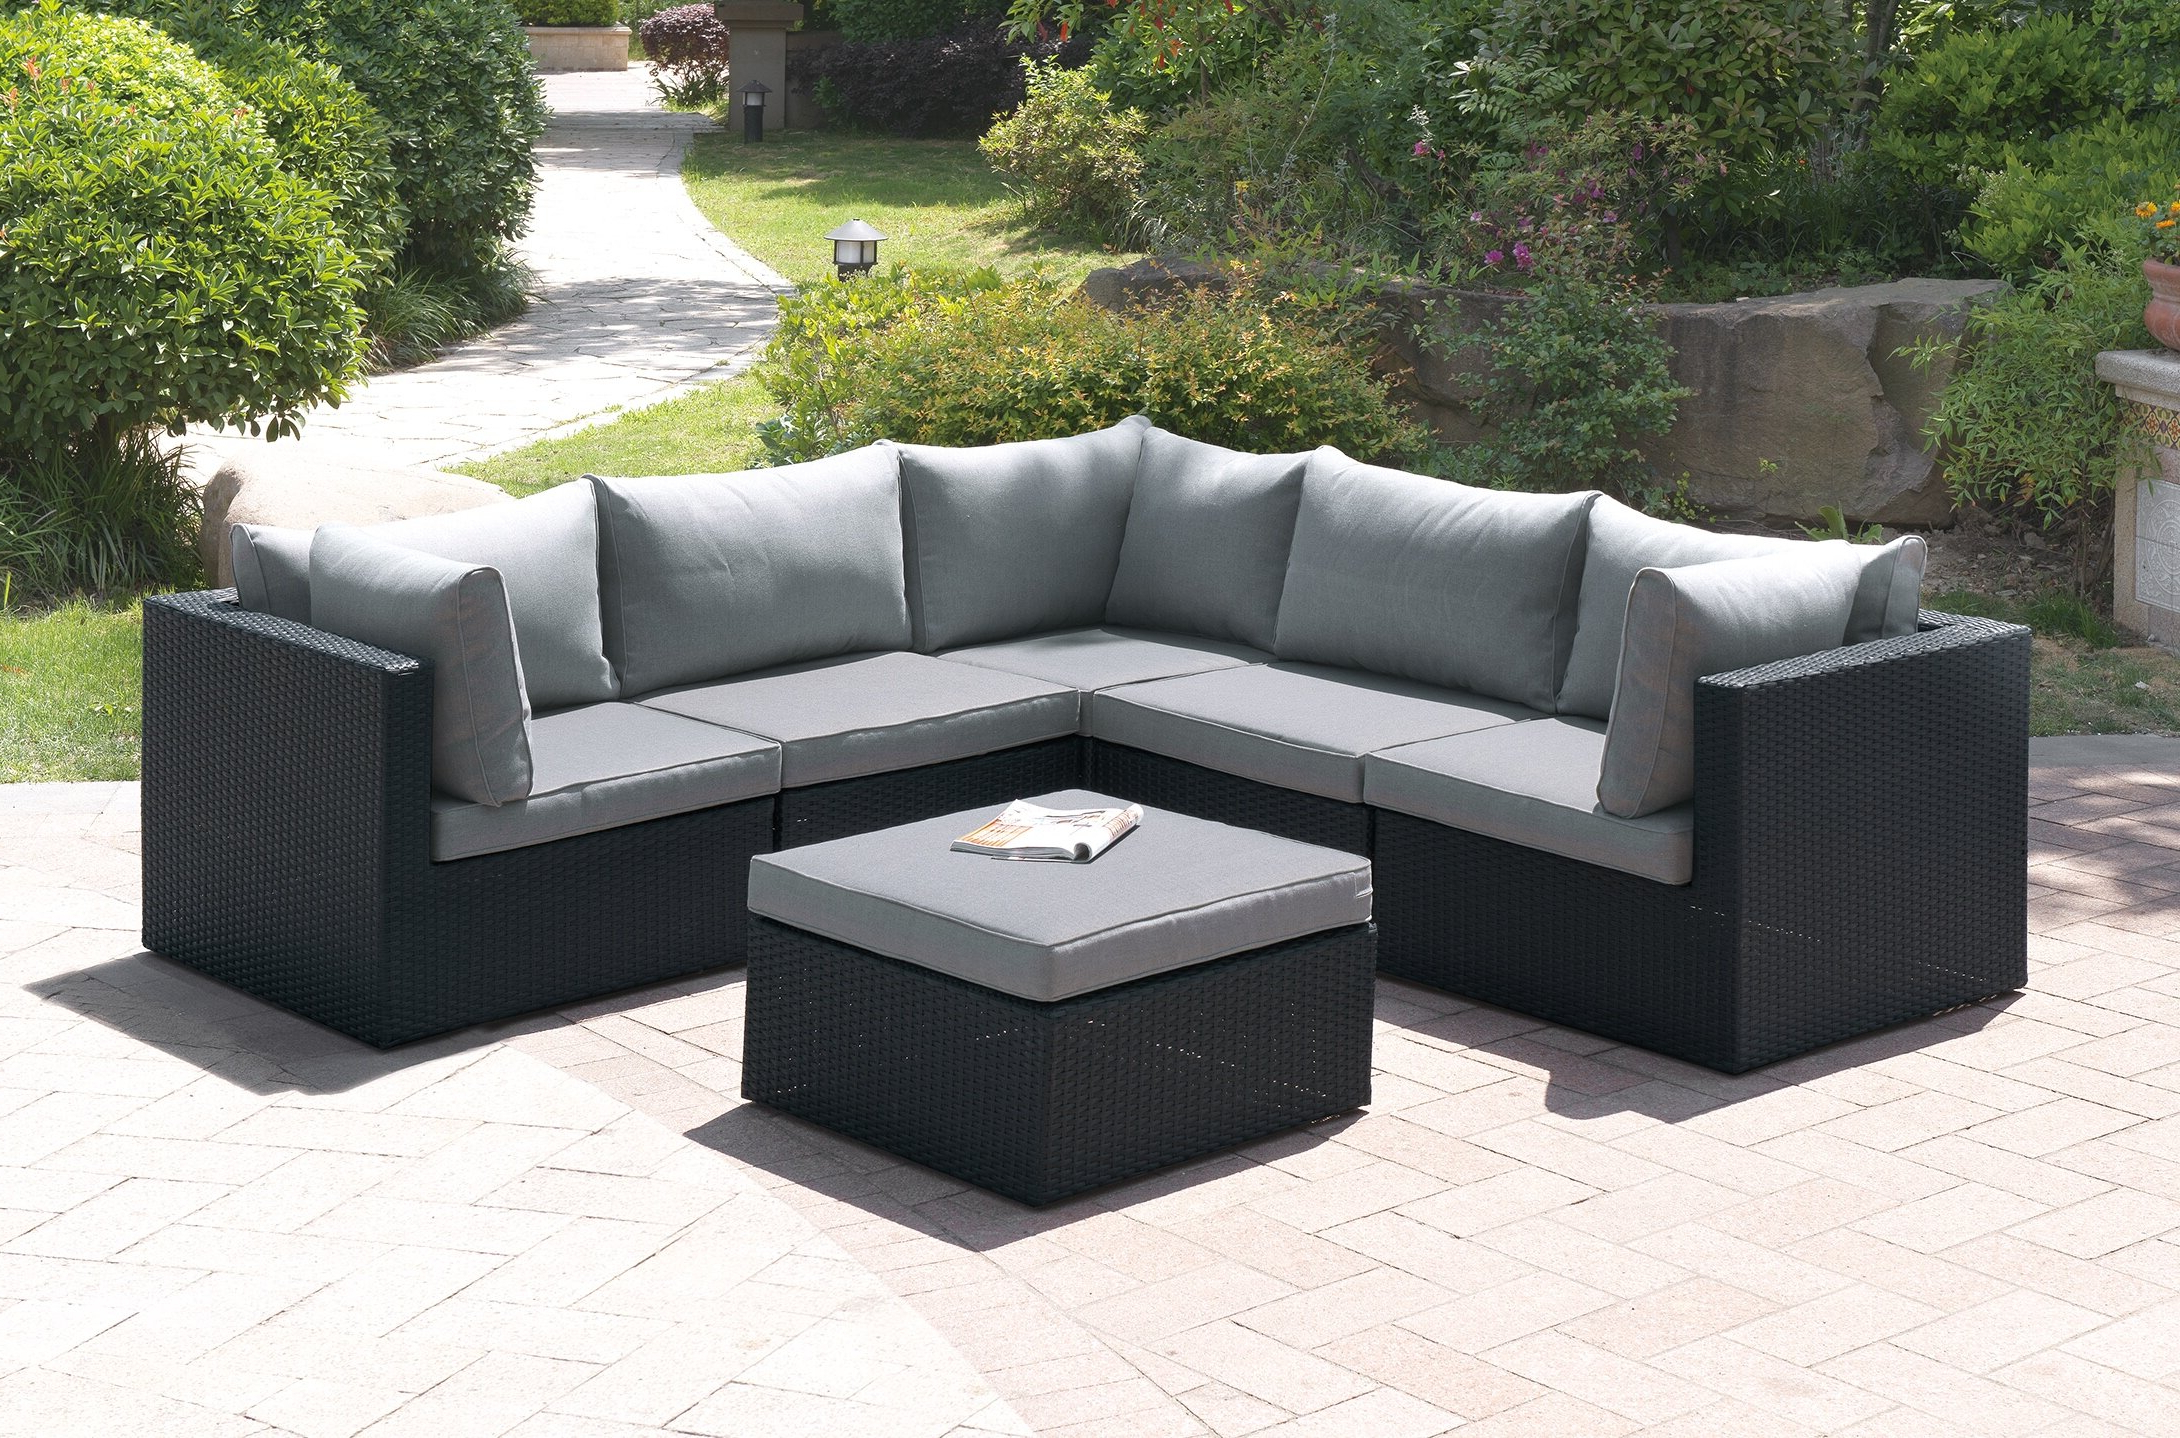 Most Popular Boyce Outdoor Patio Sectionals With Cushions Within Landose 6 Piece Sectional Seating Group With Cushion (View 13 of 25)